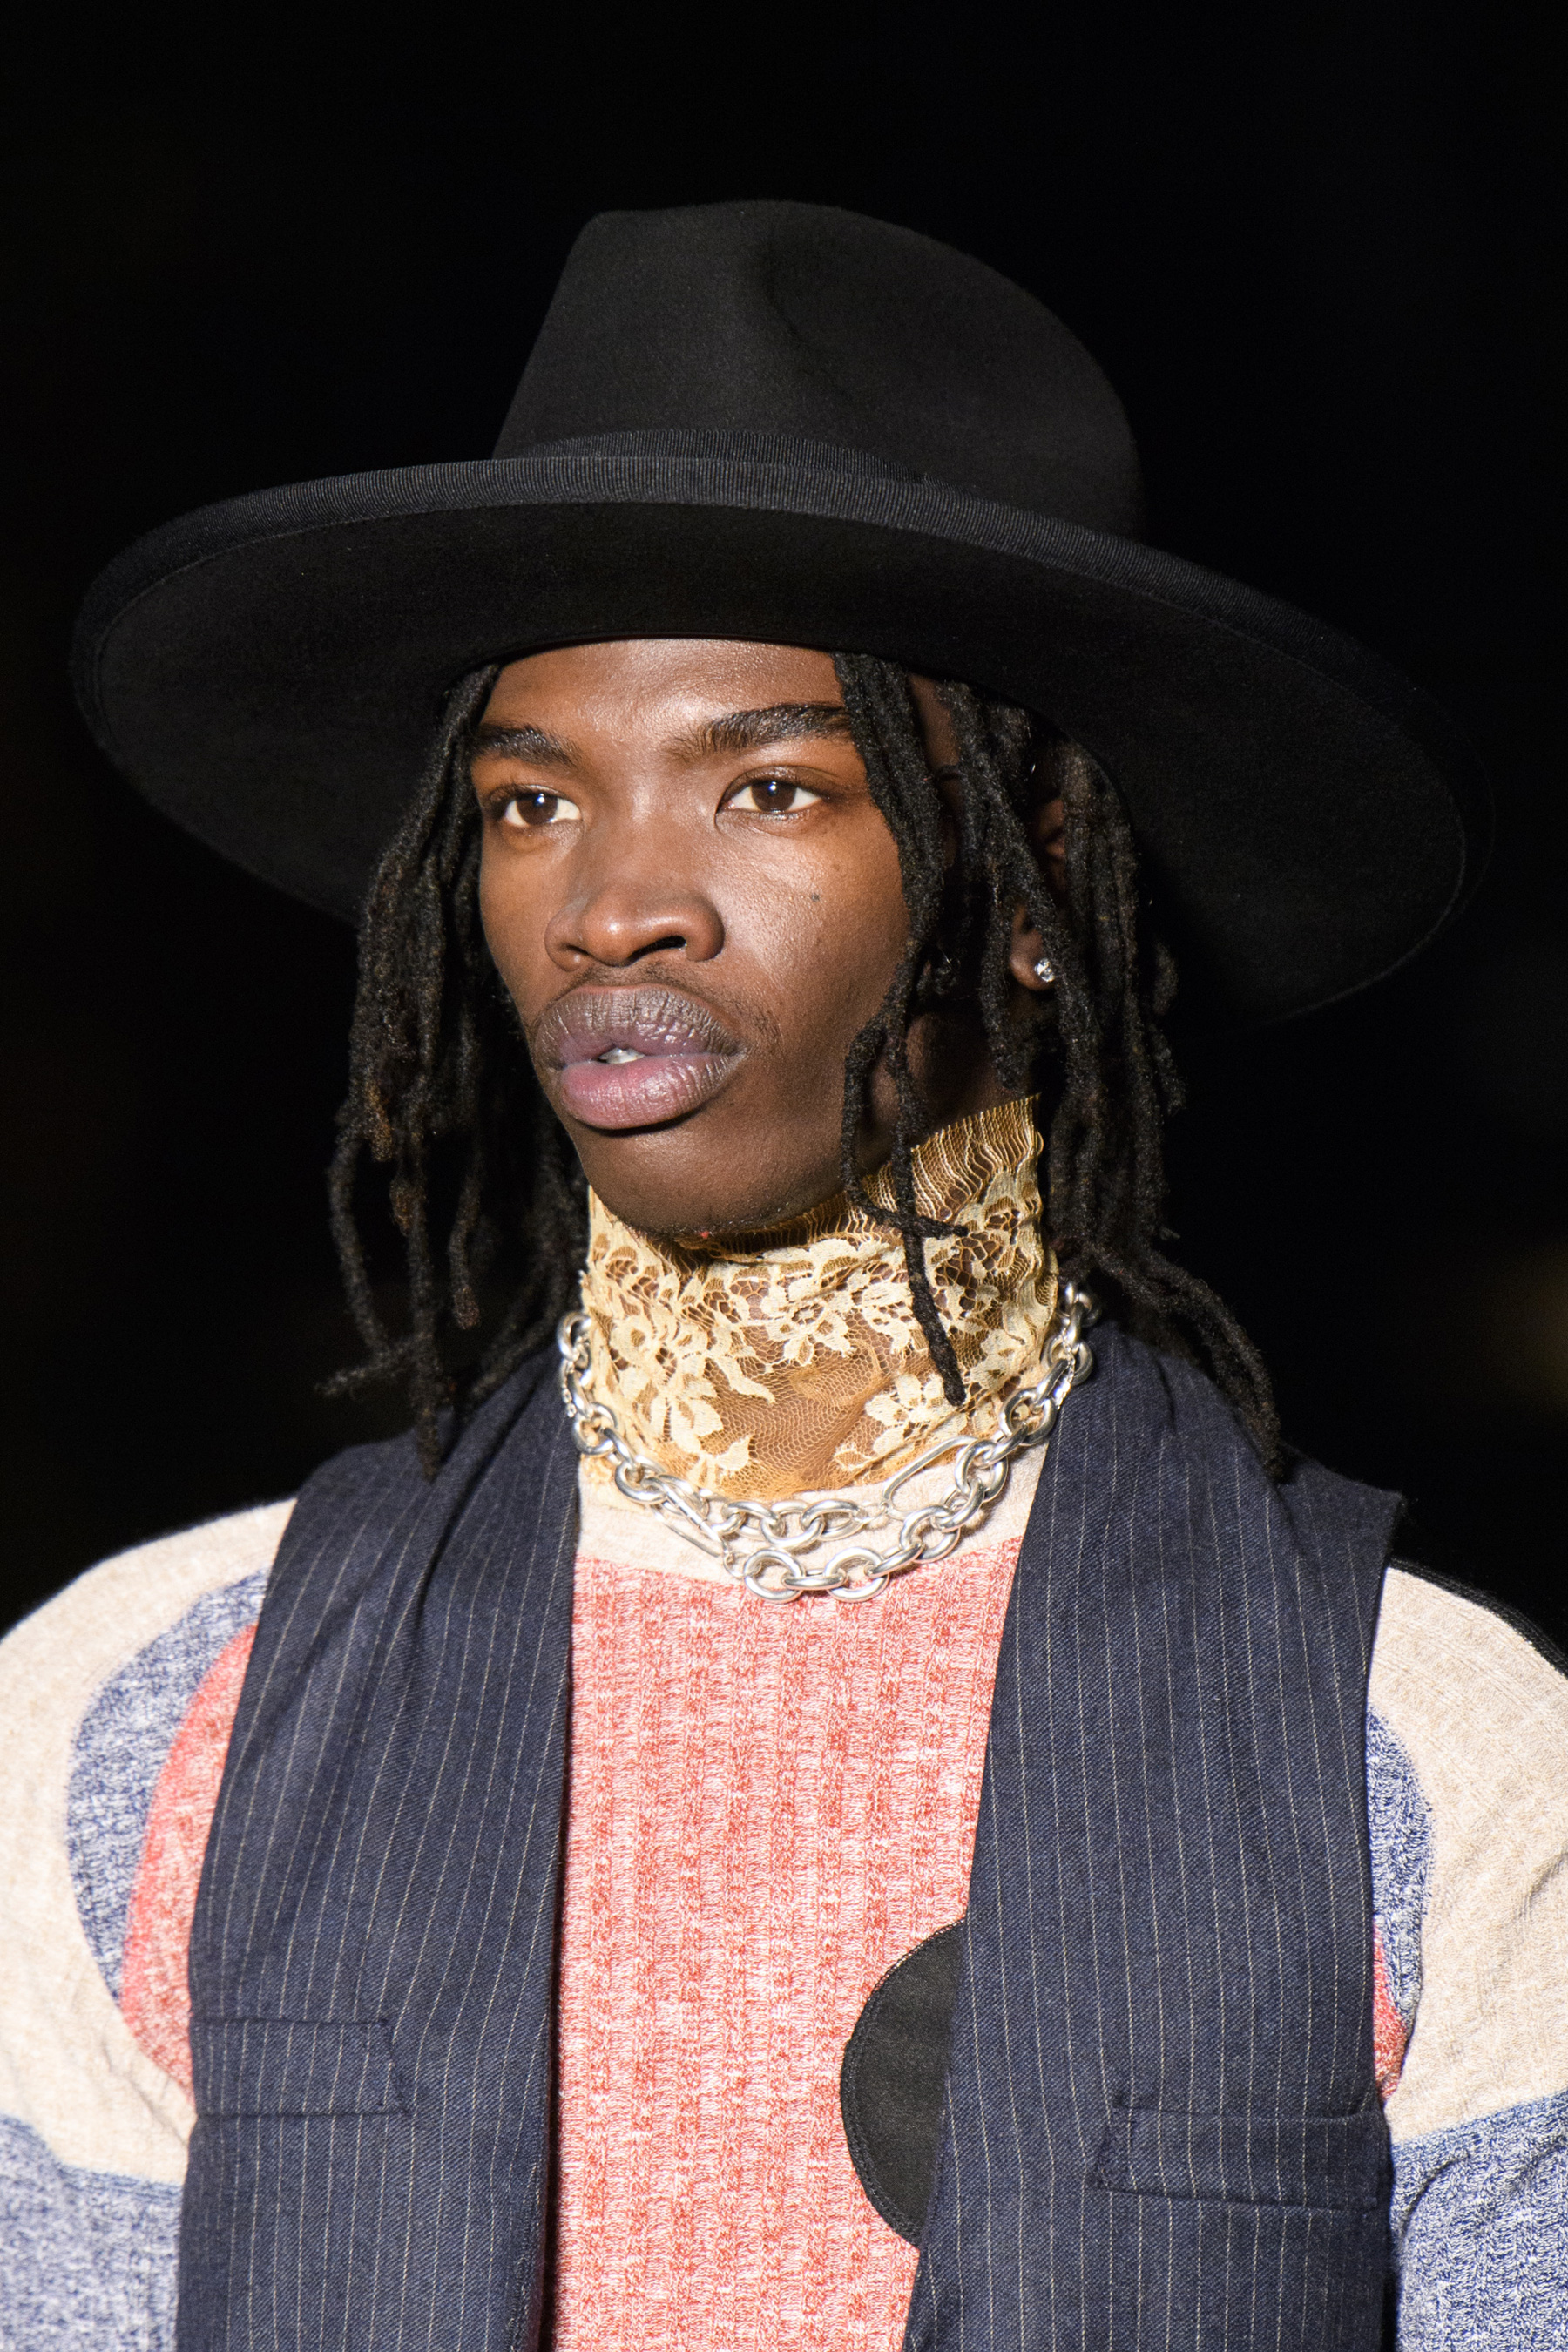 Astrid Andersen Fall 2019 Men's Fashion Show details